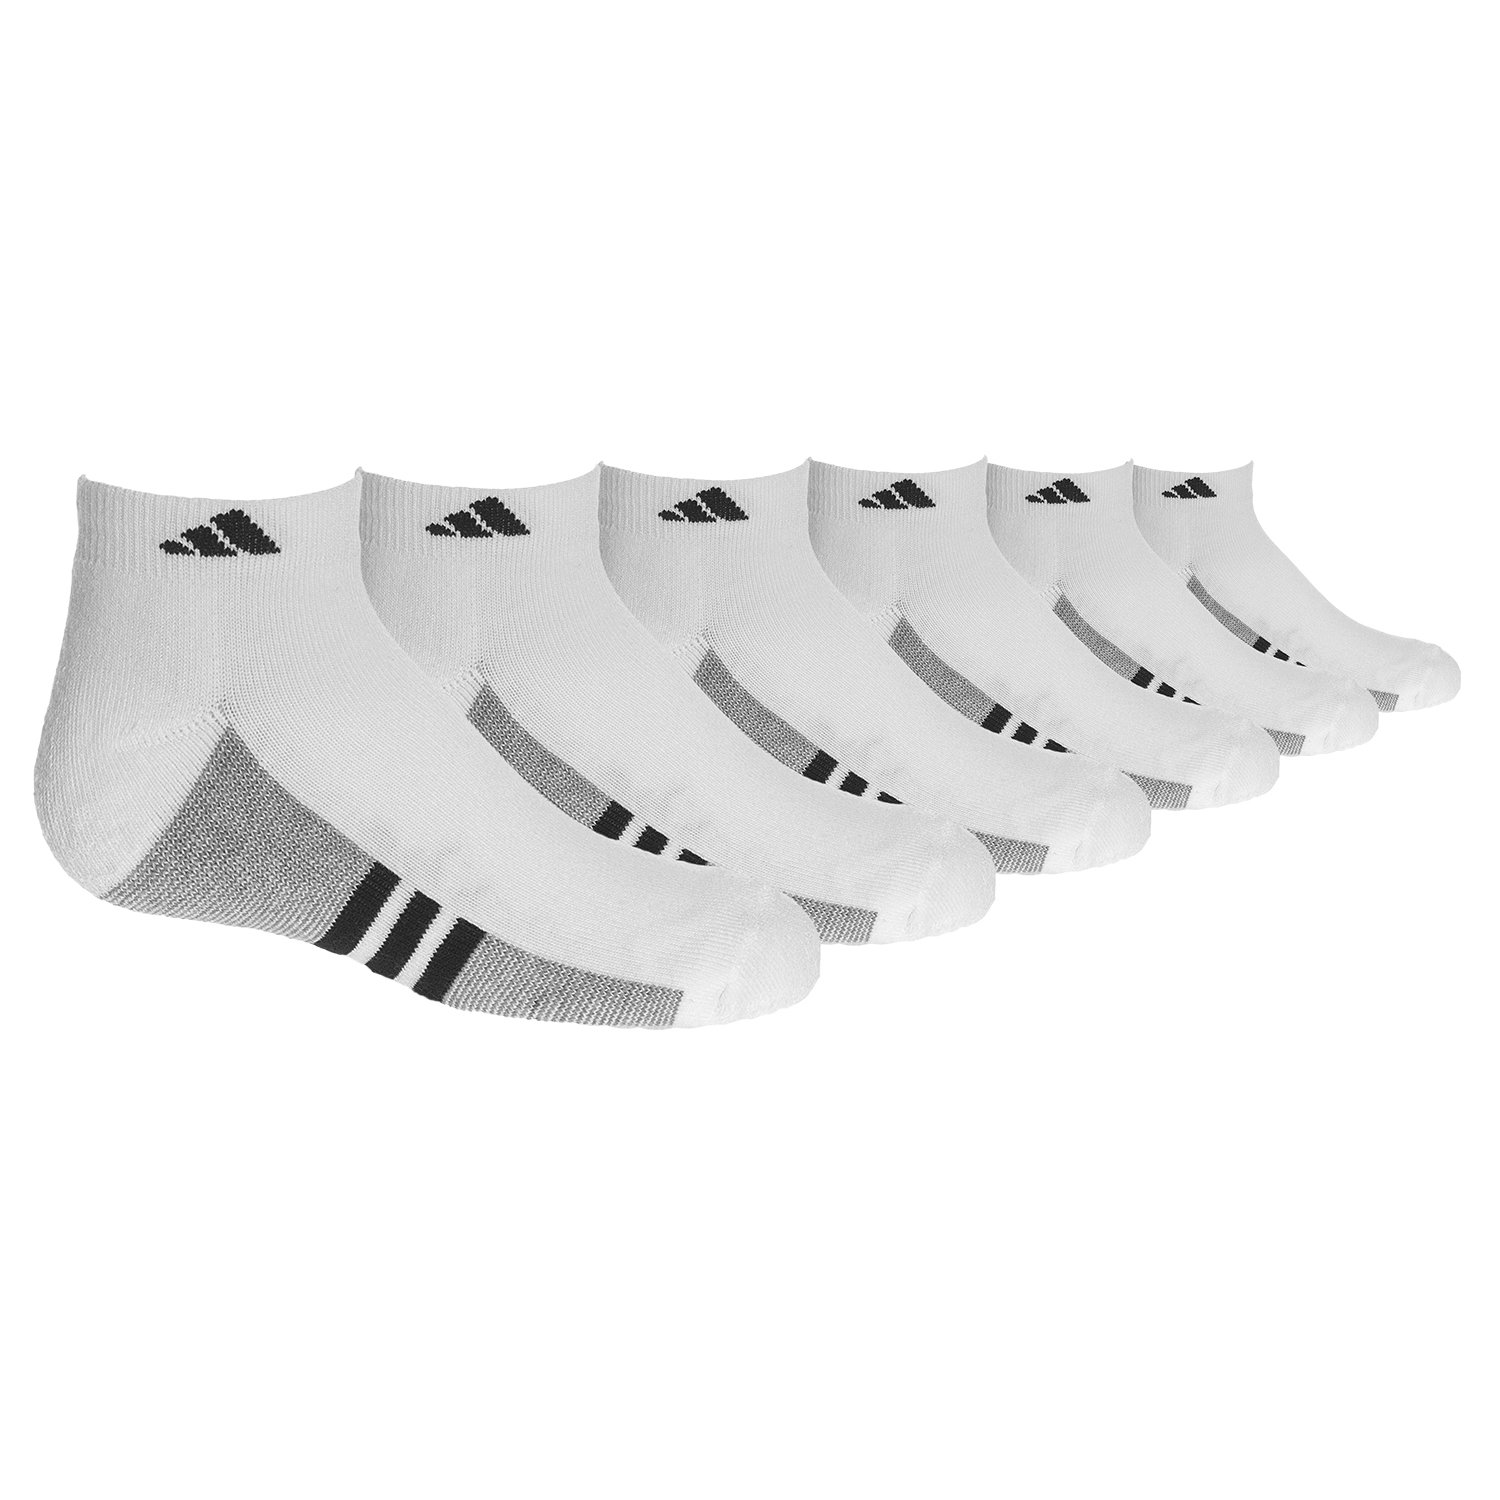 adidas Youth Cushioned 6pk Low Cut Sock, White/Black/Aluminum 2, 3Y-9 Agron Socks